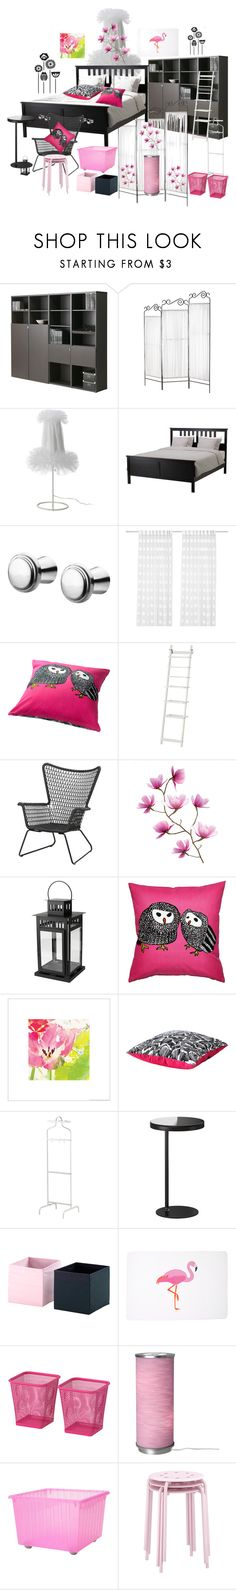 IKEA by ragnhild-bergan on Polyvore featuring interior, interiors, interior design, home, home decor, interior decorating and Black Poppy